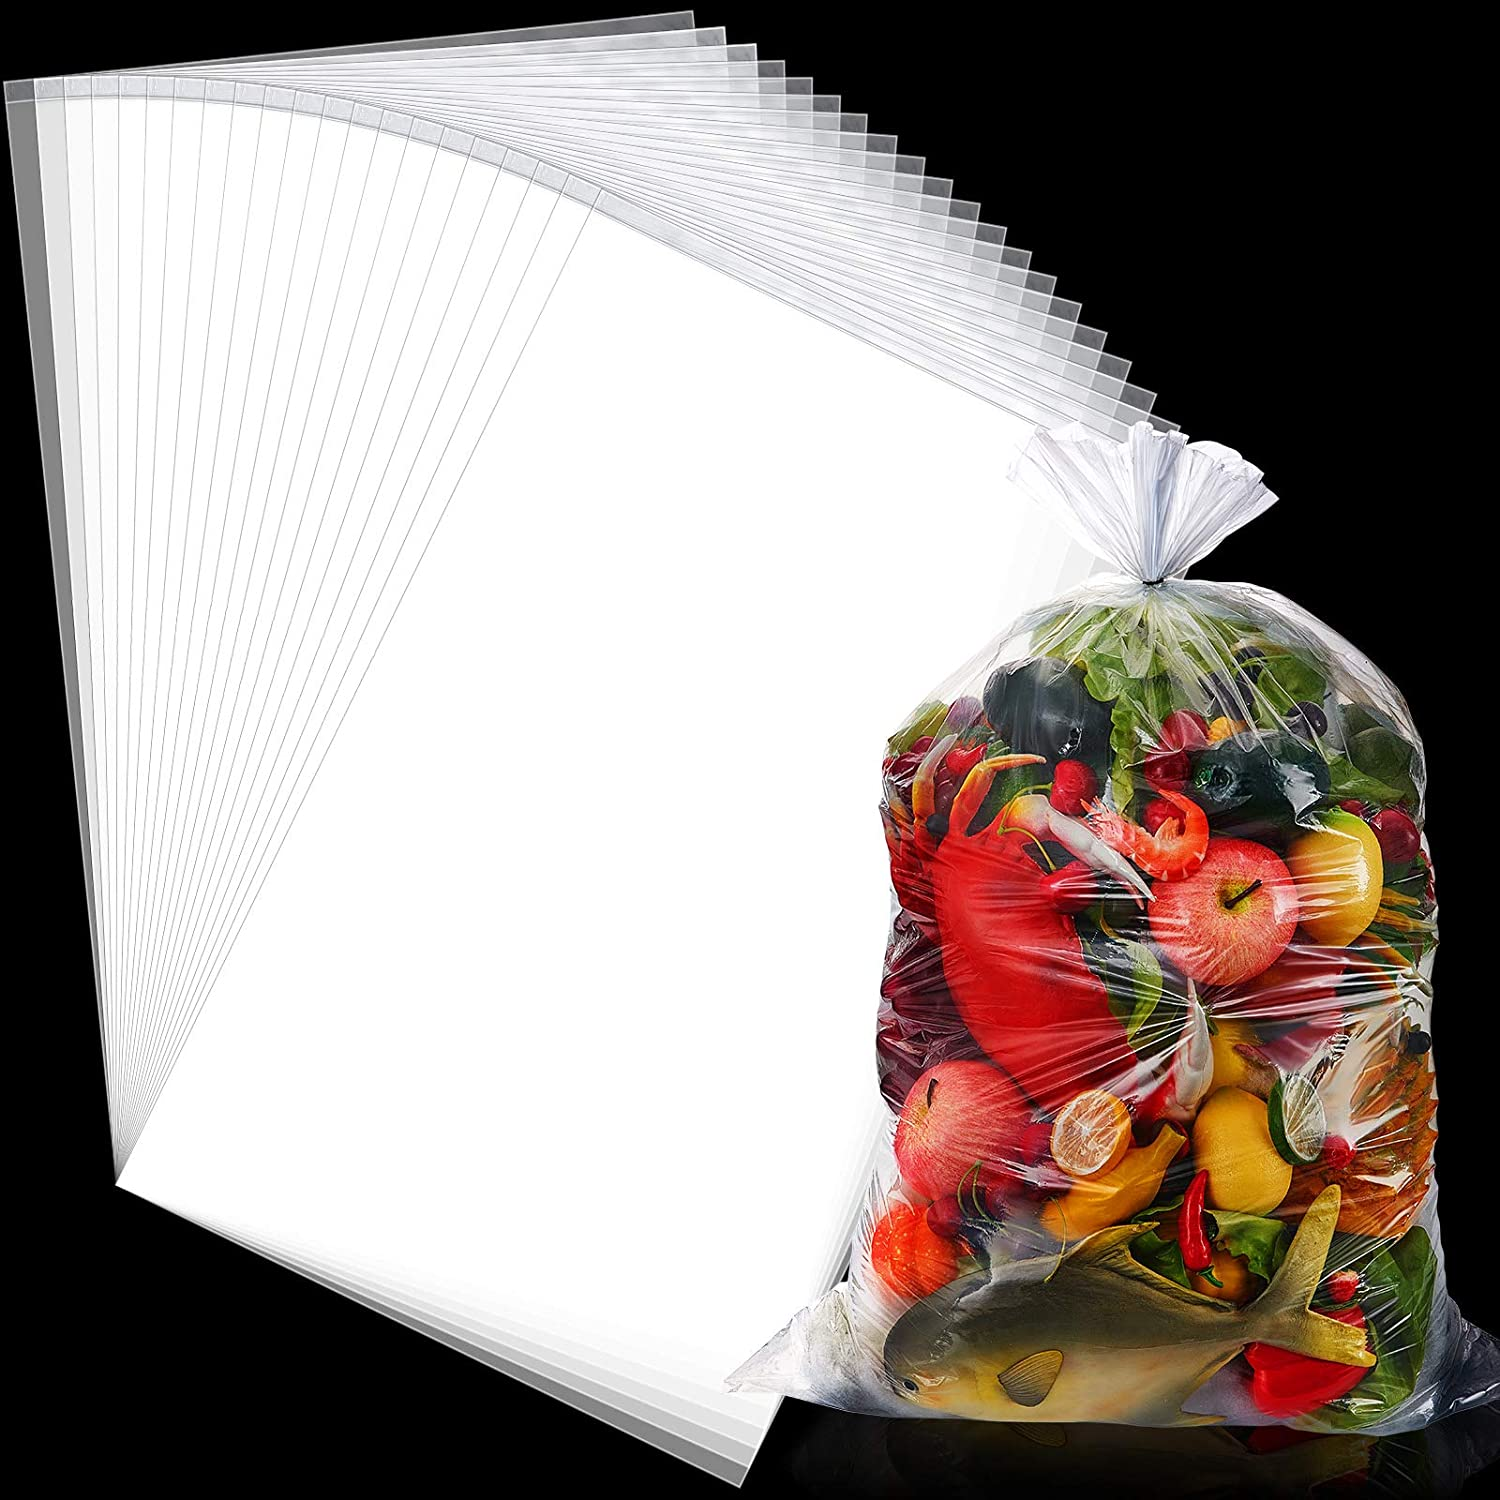 18 Pieces 5 Gallon Bucket Liner Bags for Marinating and Brining Leak Proof Heavy Duty Bags for Food Storage